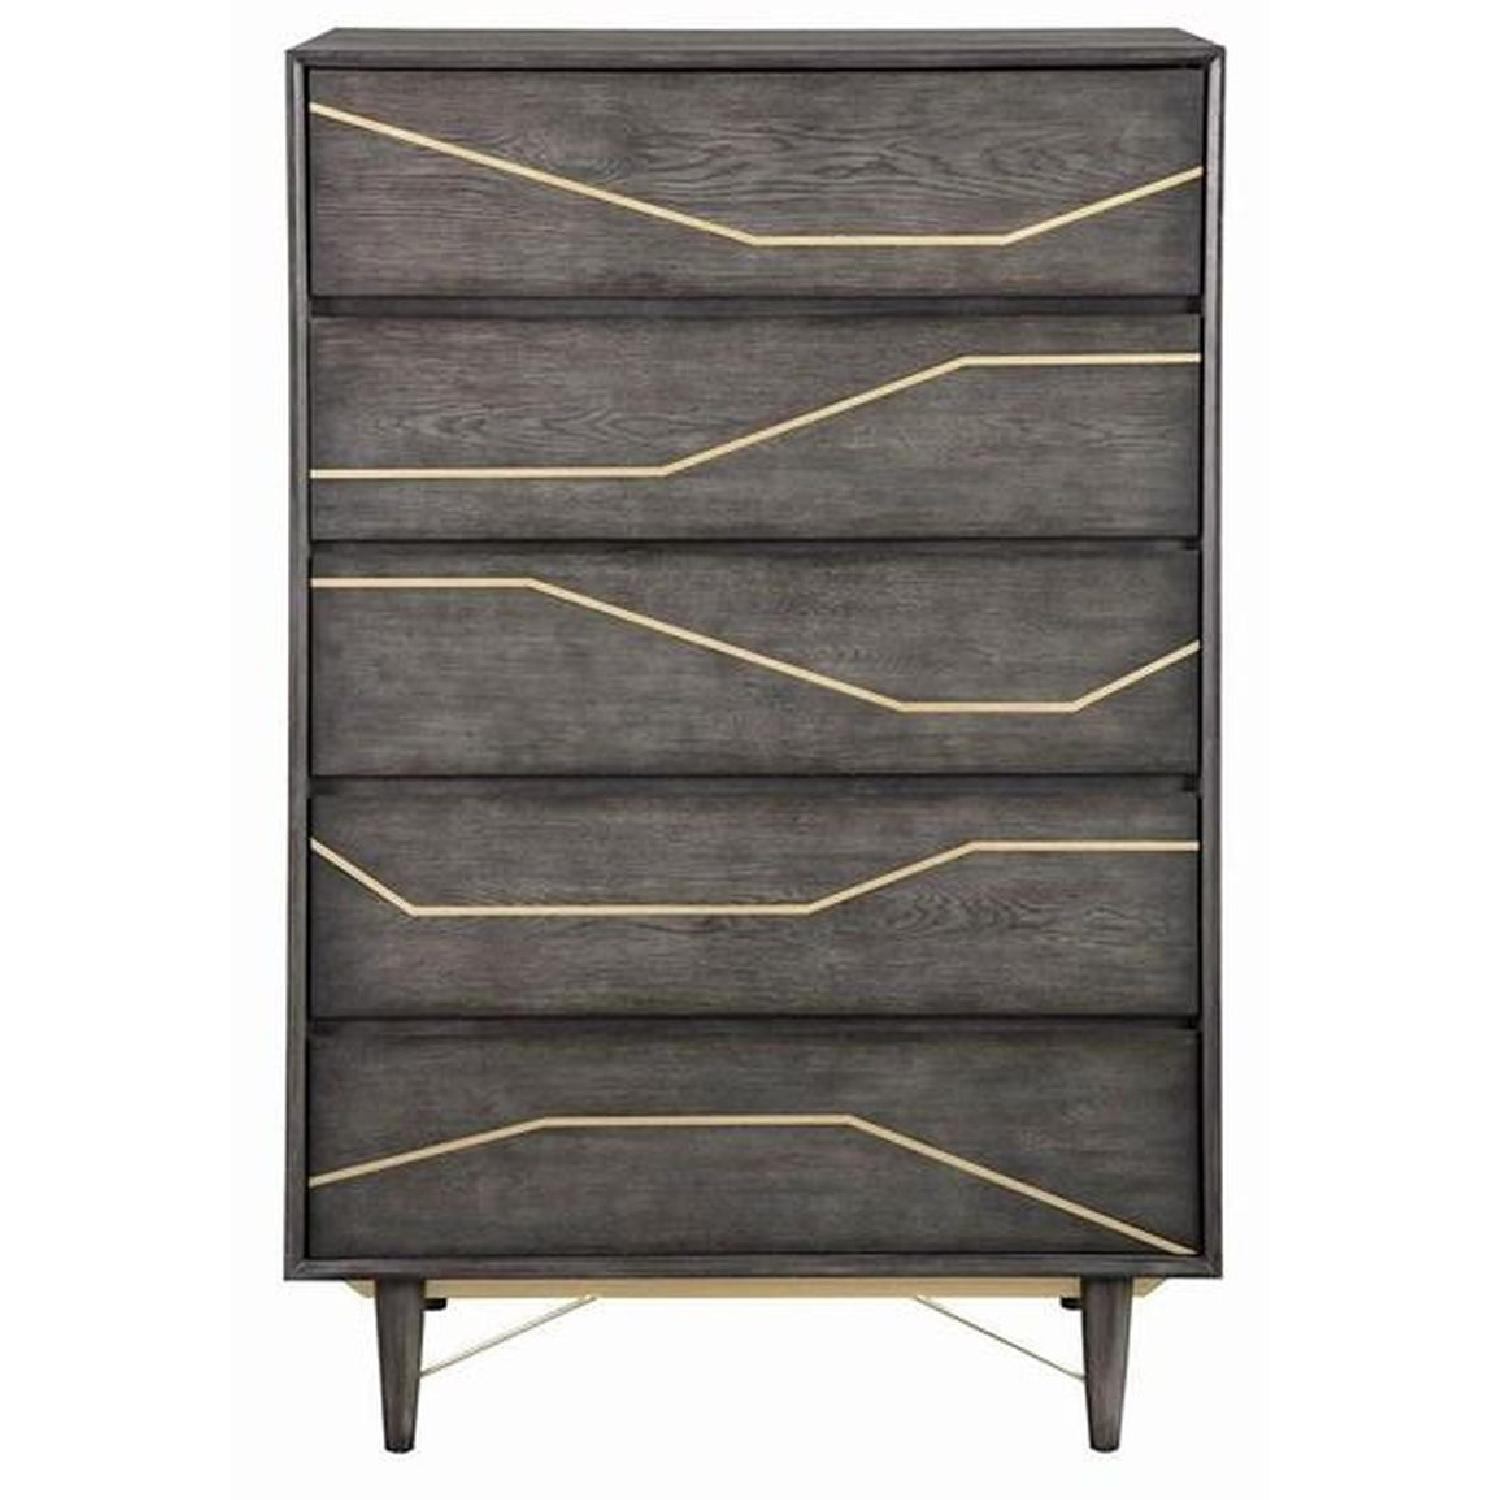 Modern Dresser in Graphite Finish w/ Gold Color Inlay - image-8